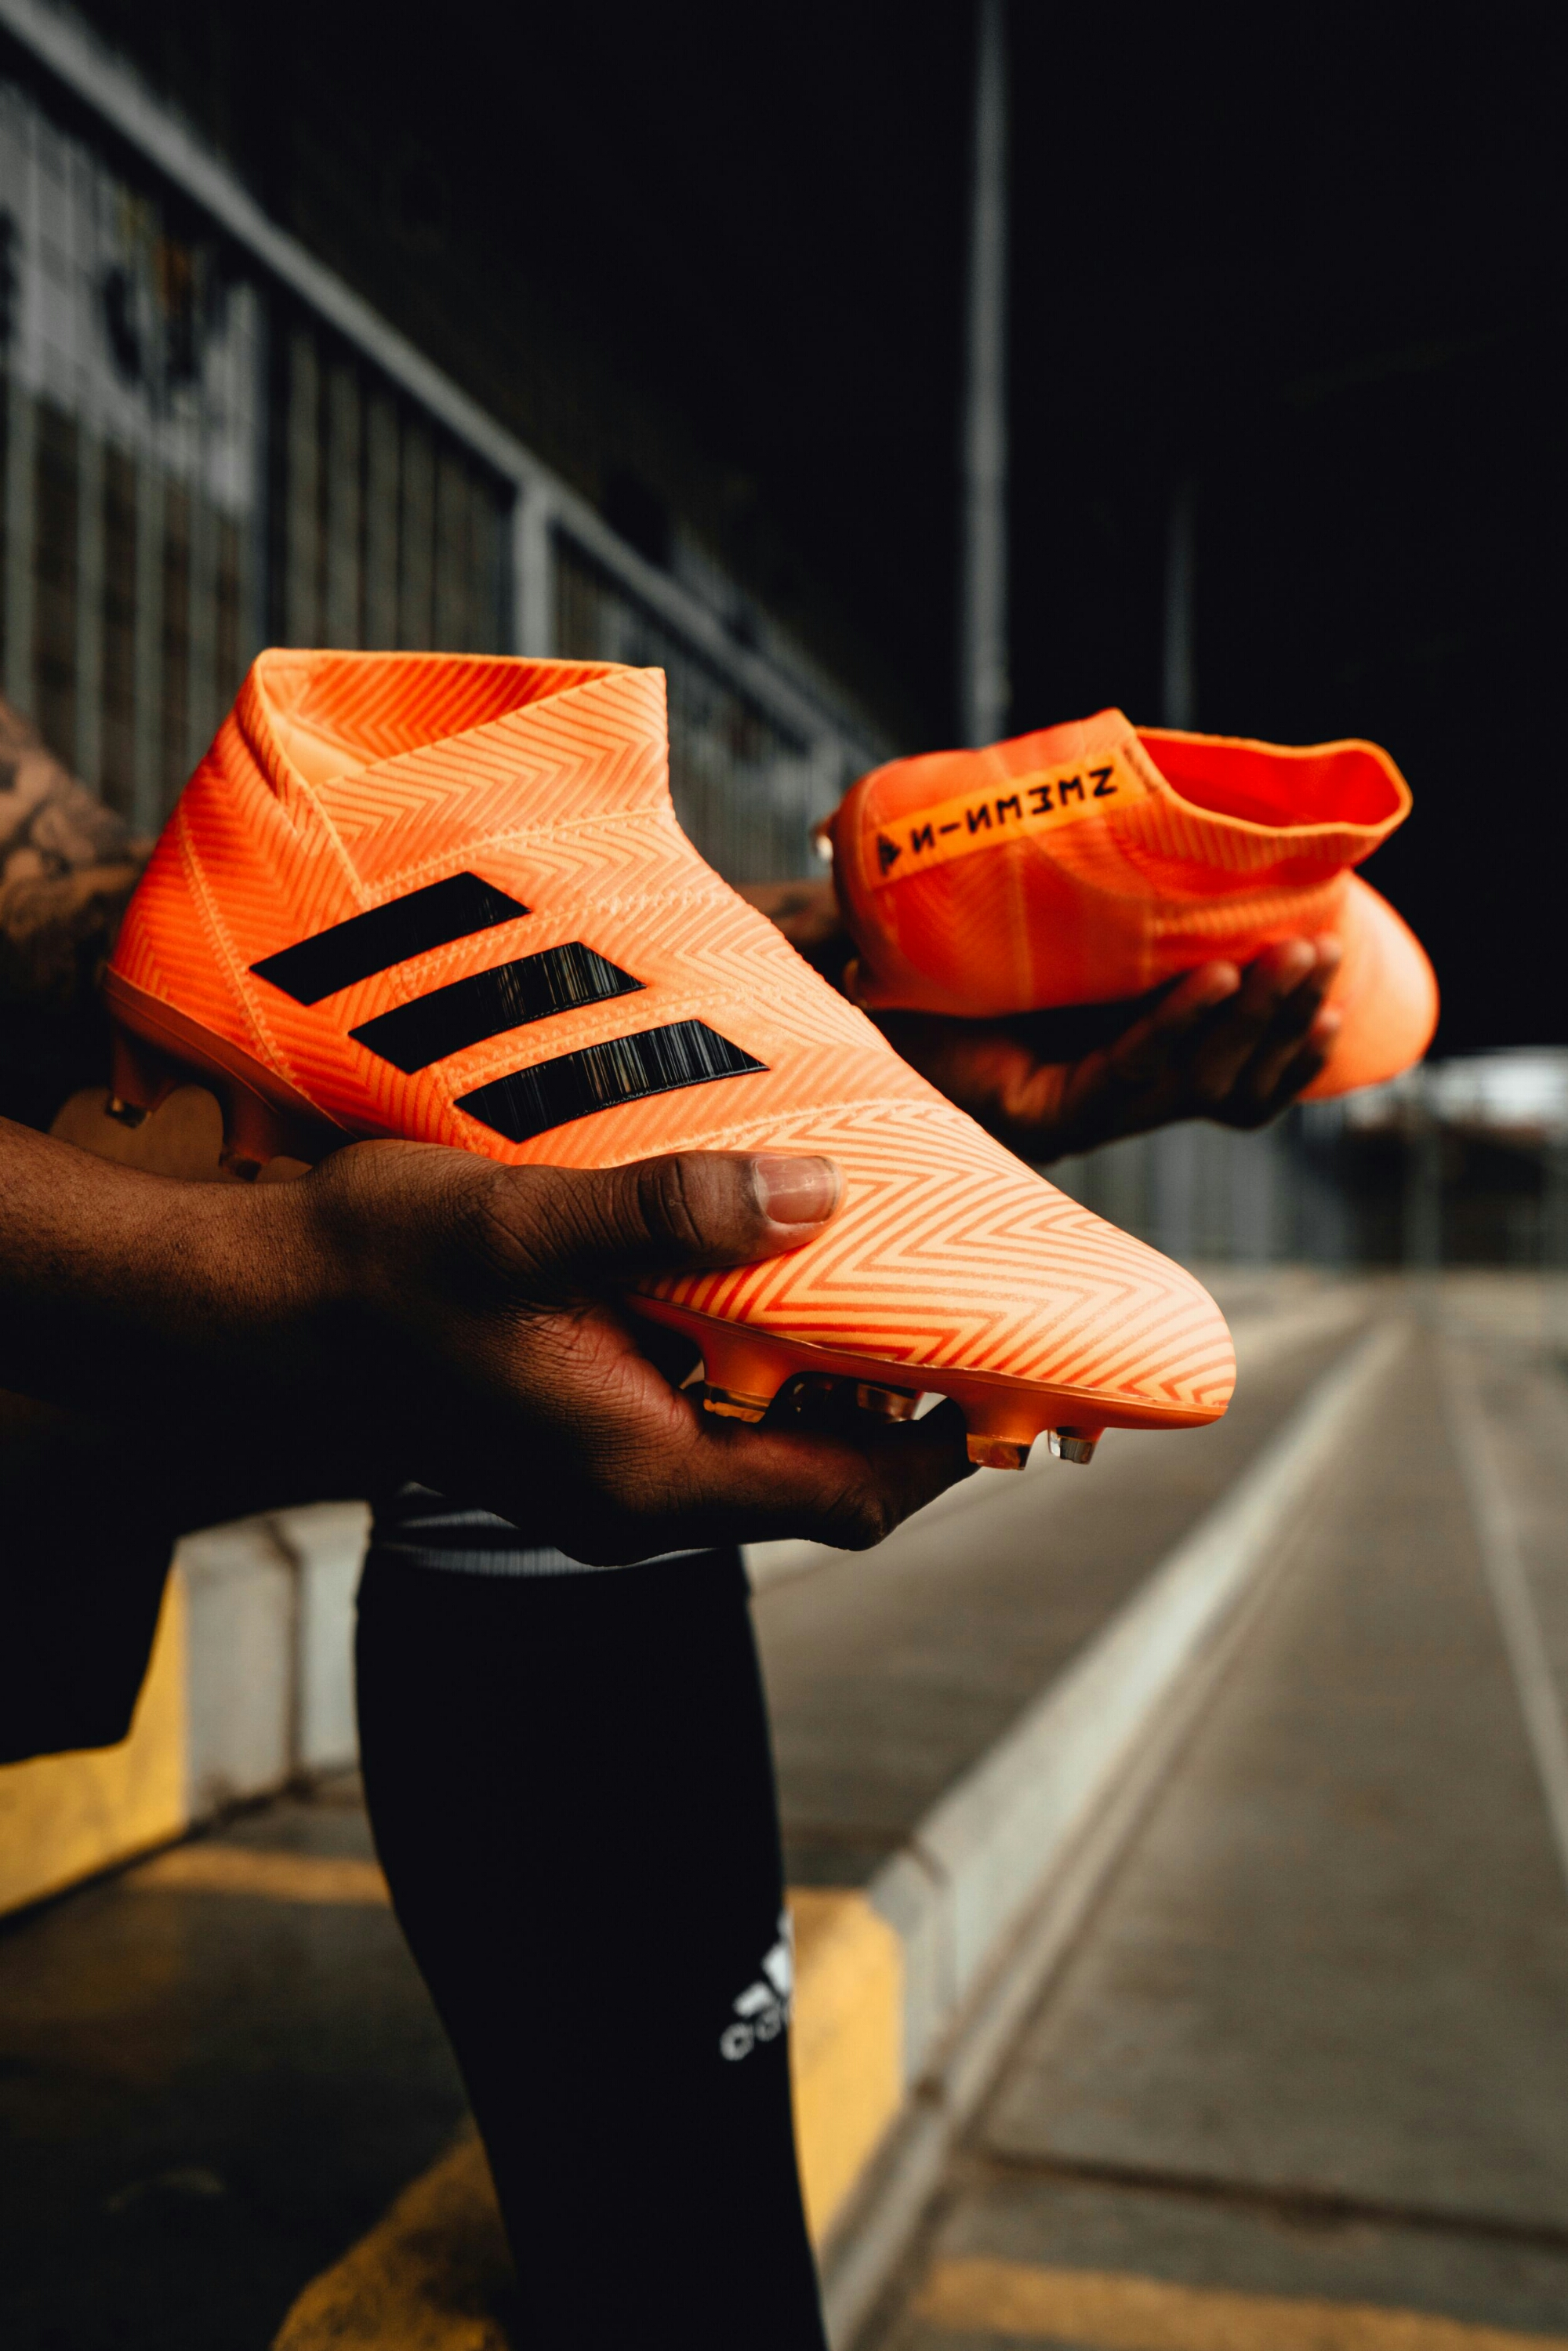 d3b6676803d7 adidas Football has finally released the Energy Mode NEMEZIZ 18+ 360  AGILITY, part of the new Energy Mode pack. Coming in a new electric orange  colourway ...